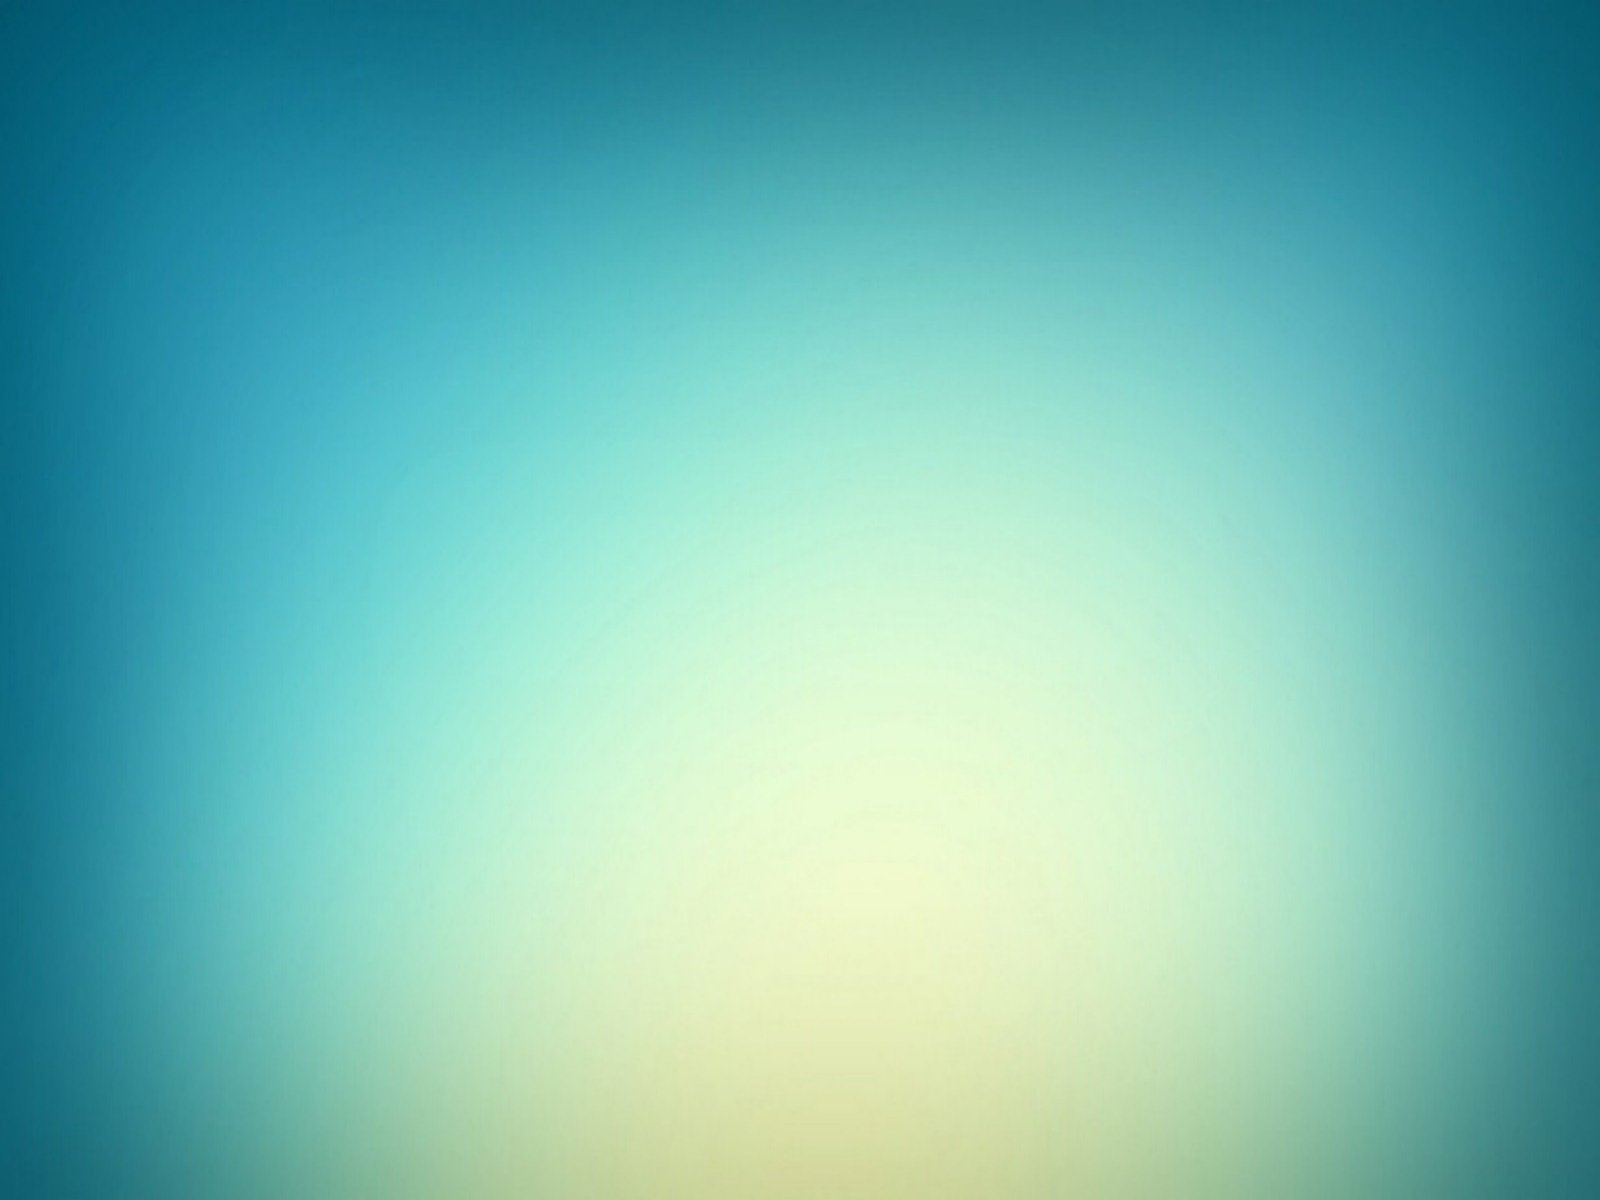 iPhone 6 Plus 6 5S 5C 5 Wallpapers and iPhone 4S 4 Backgrounds 1600x1200